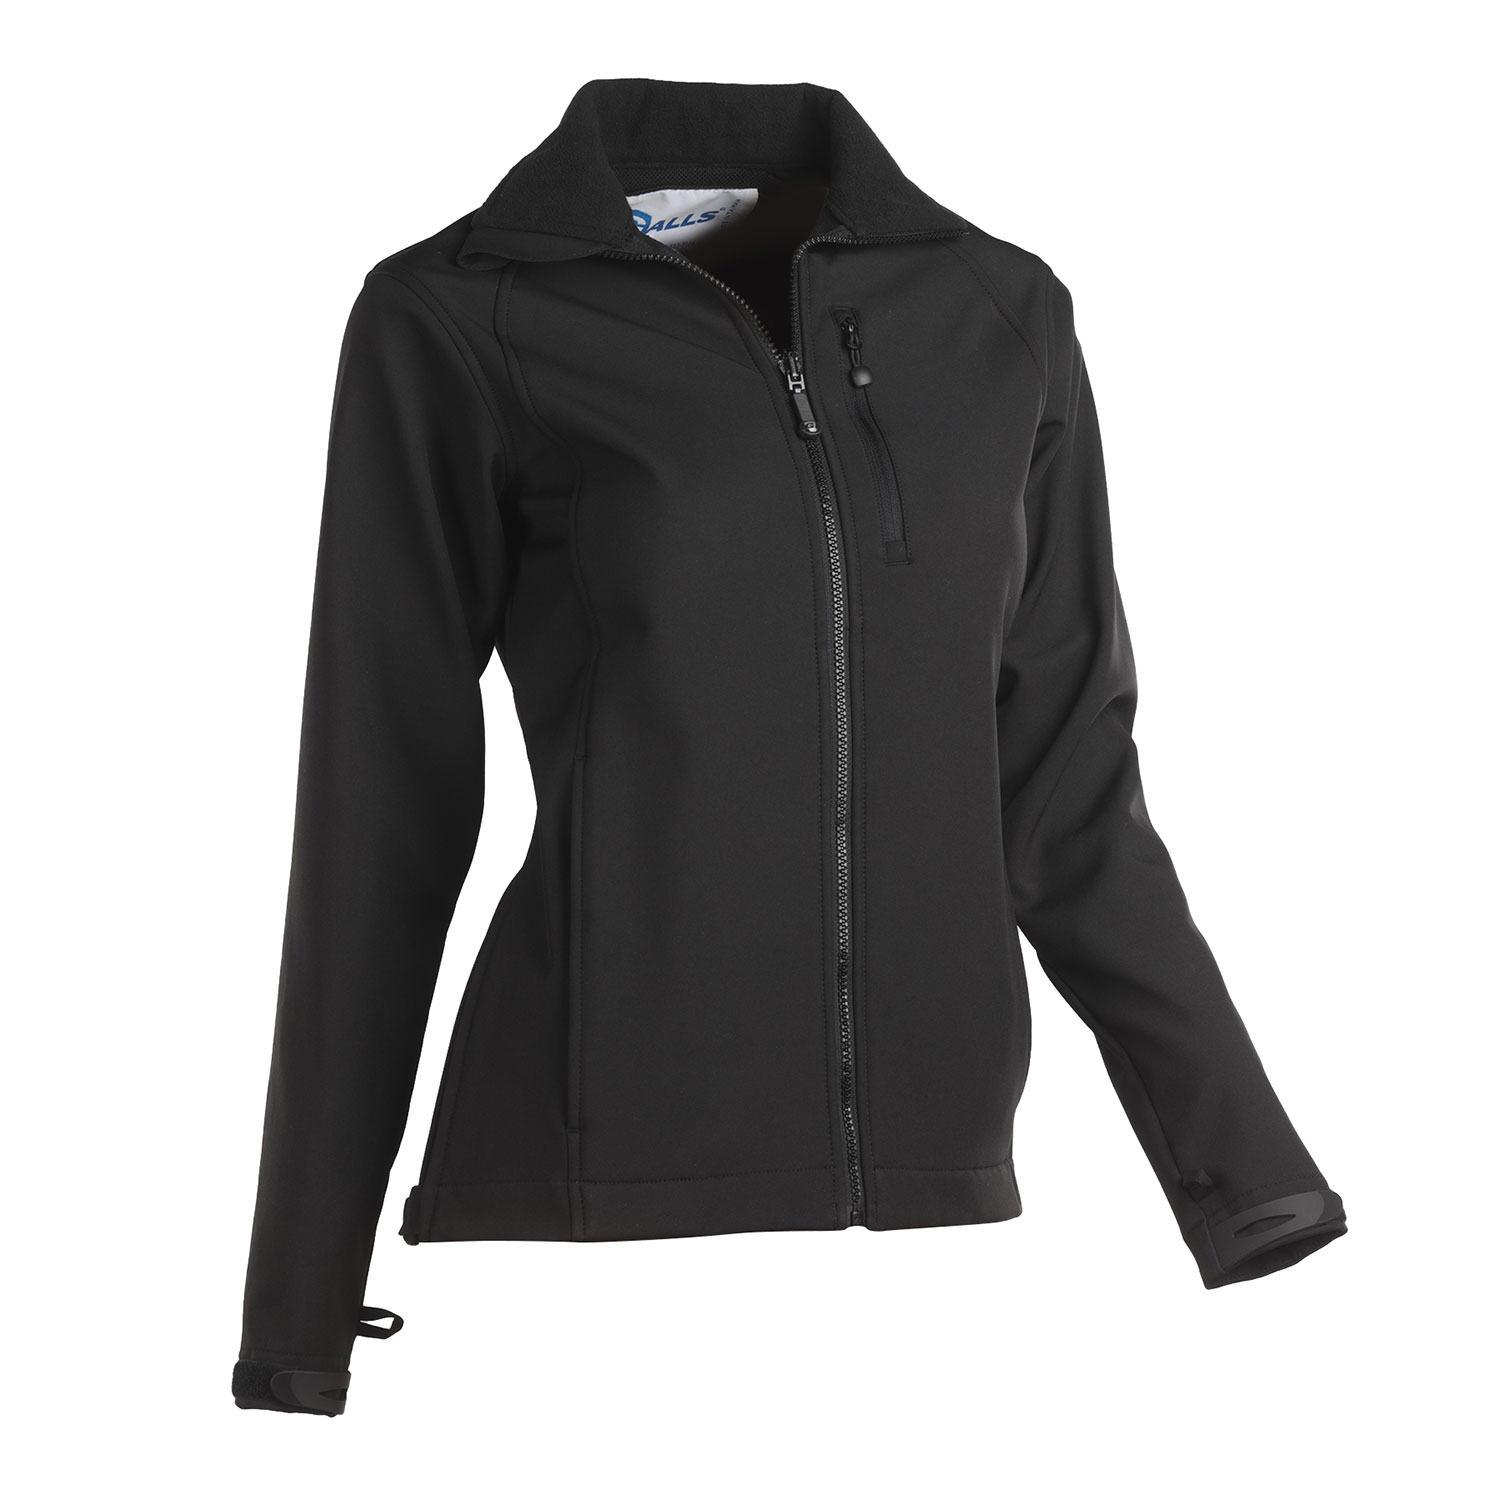 Galls Womens Agent LTC G-Tac Soft-Shell Jacket